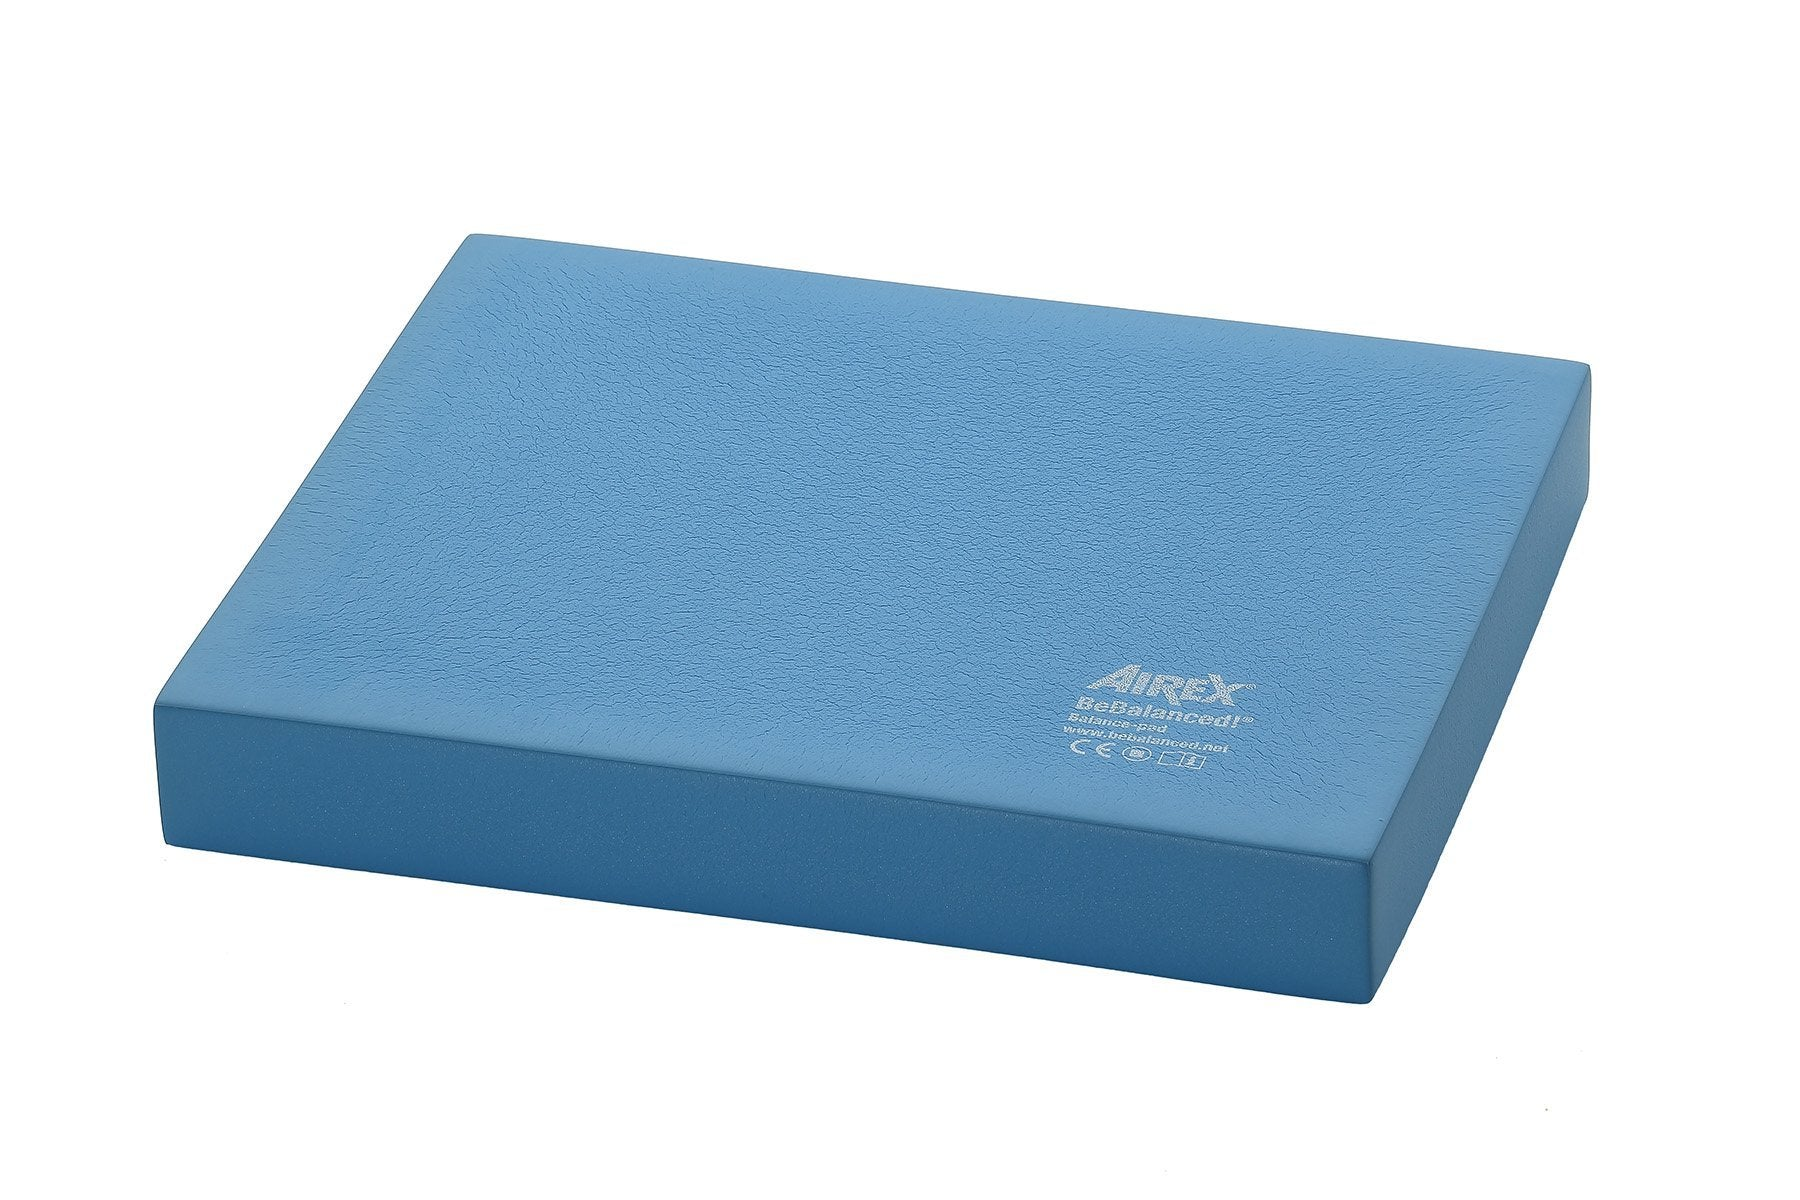 "Airex® balance pad - Standard - 16"" x 20"" x 2.5"", case of 20 - US MED REHAB"